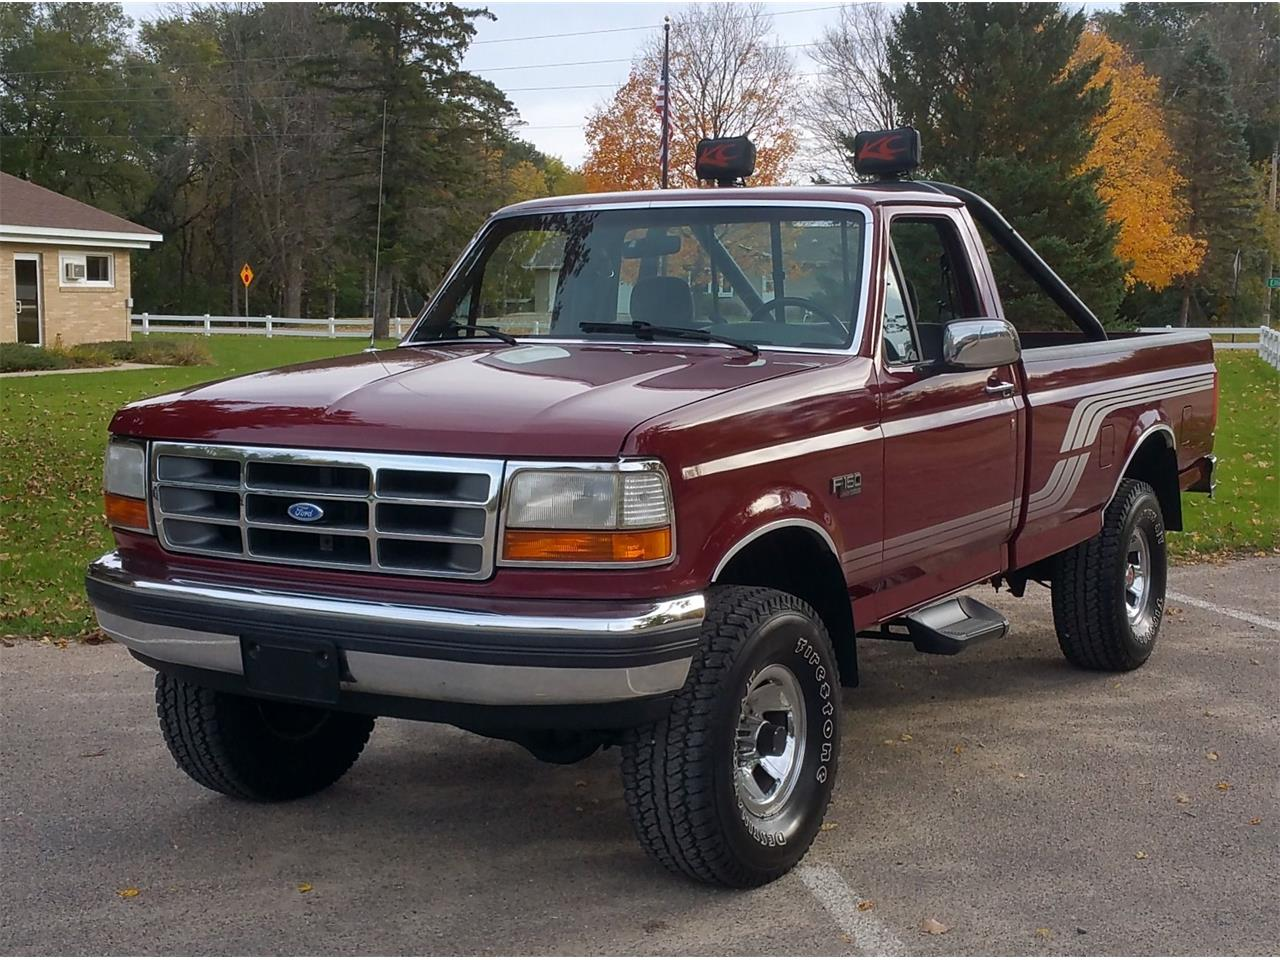 Large picture of 92 f150 nawt